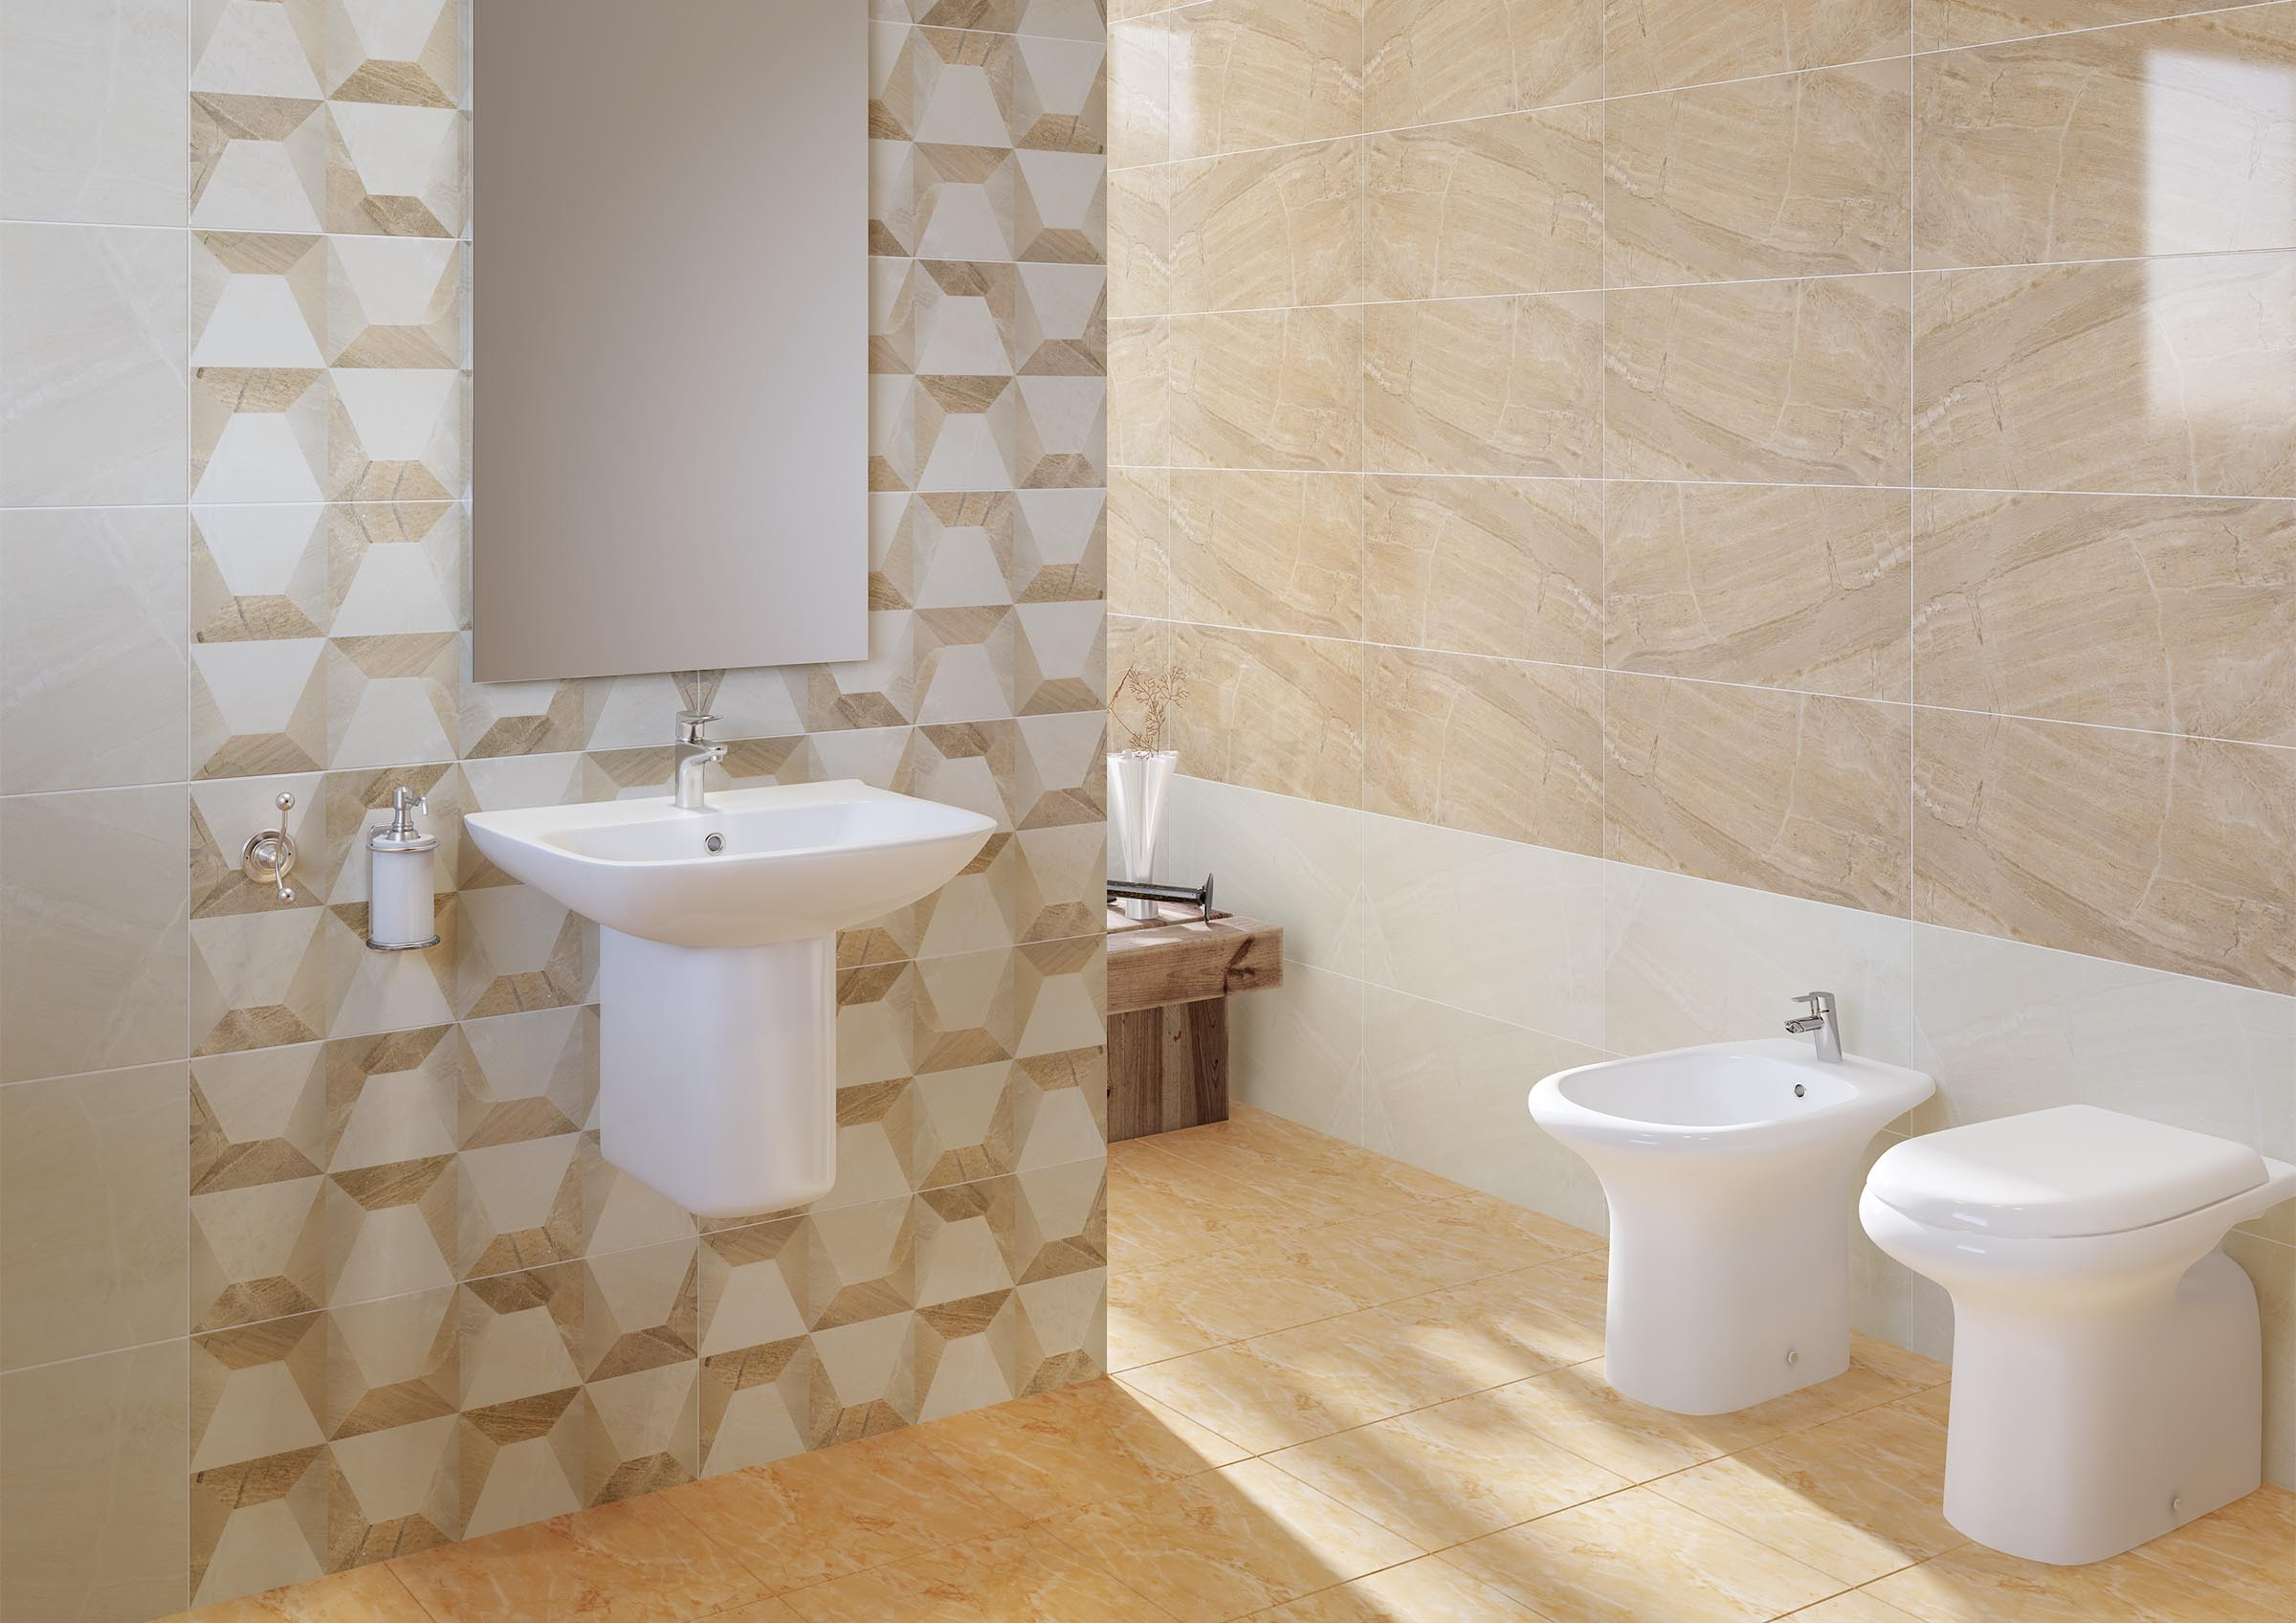 Floor and wall bathroom tiles | RAK